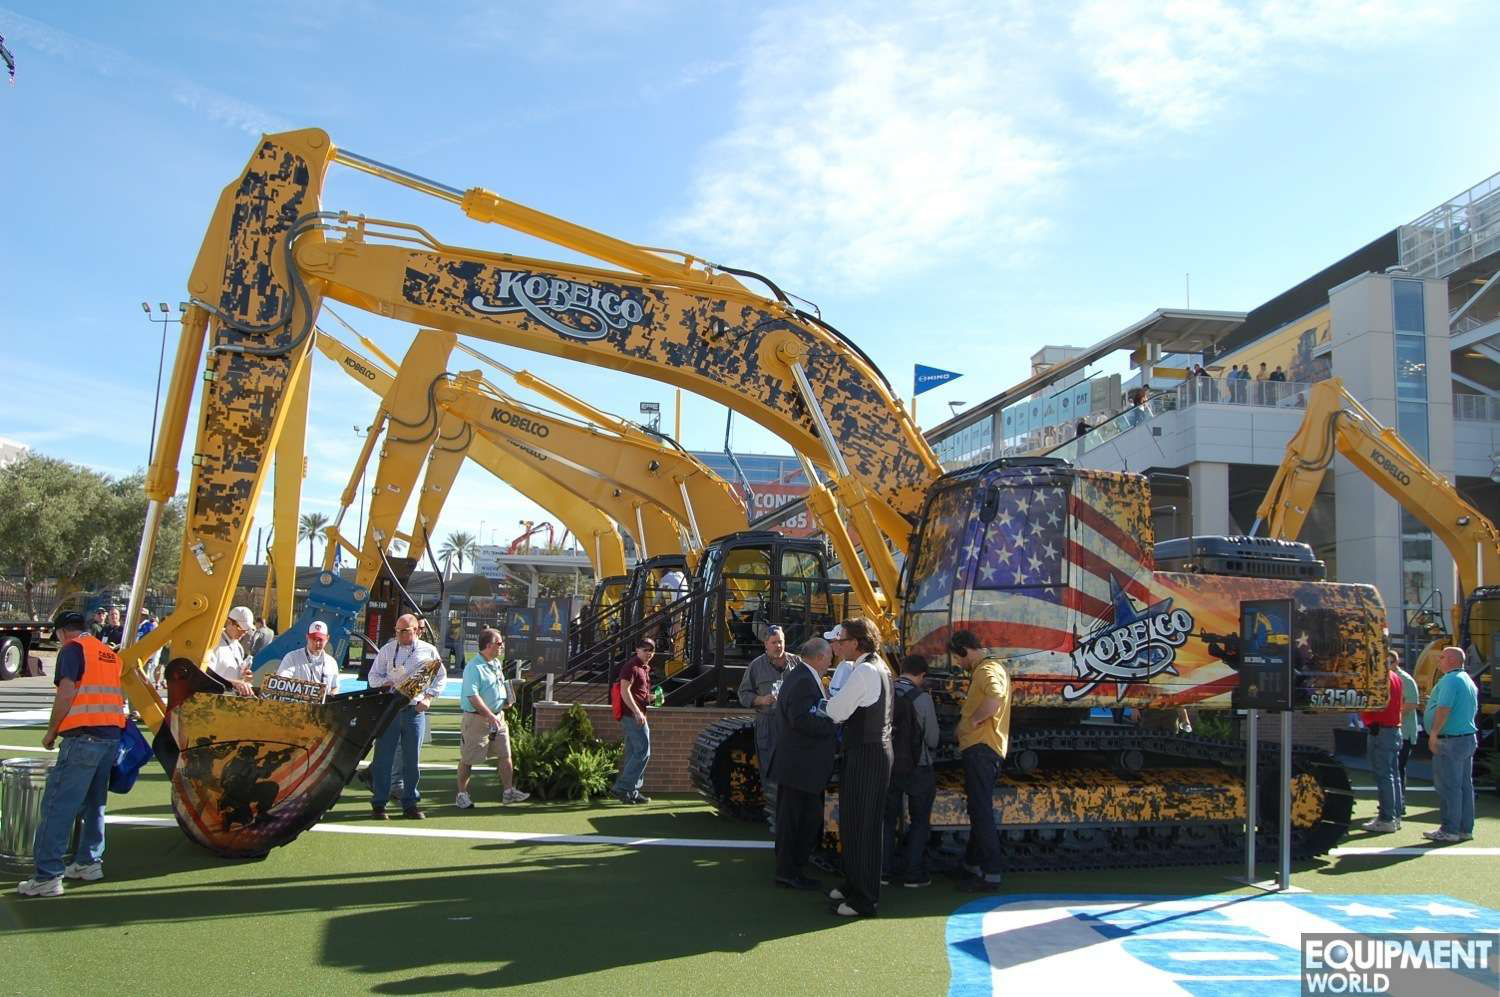 Kobelco's ConExpo centerpiece was a SK350 excavator with a patriotic paint job honoring American soldiers.